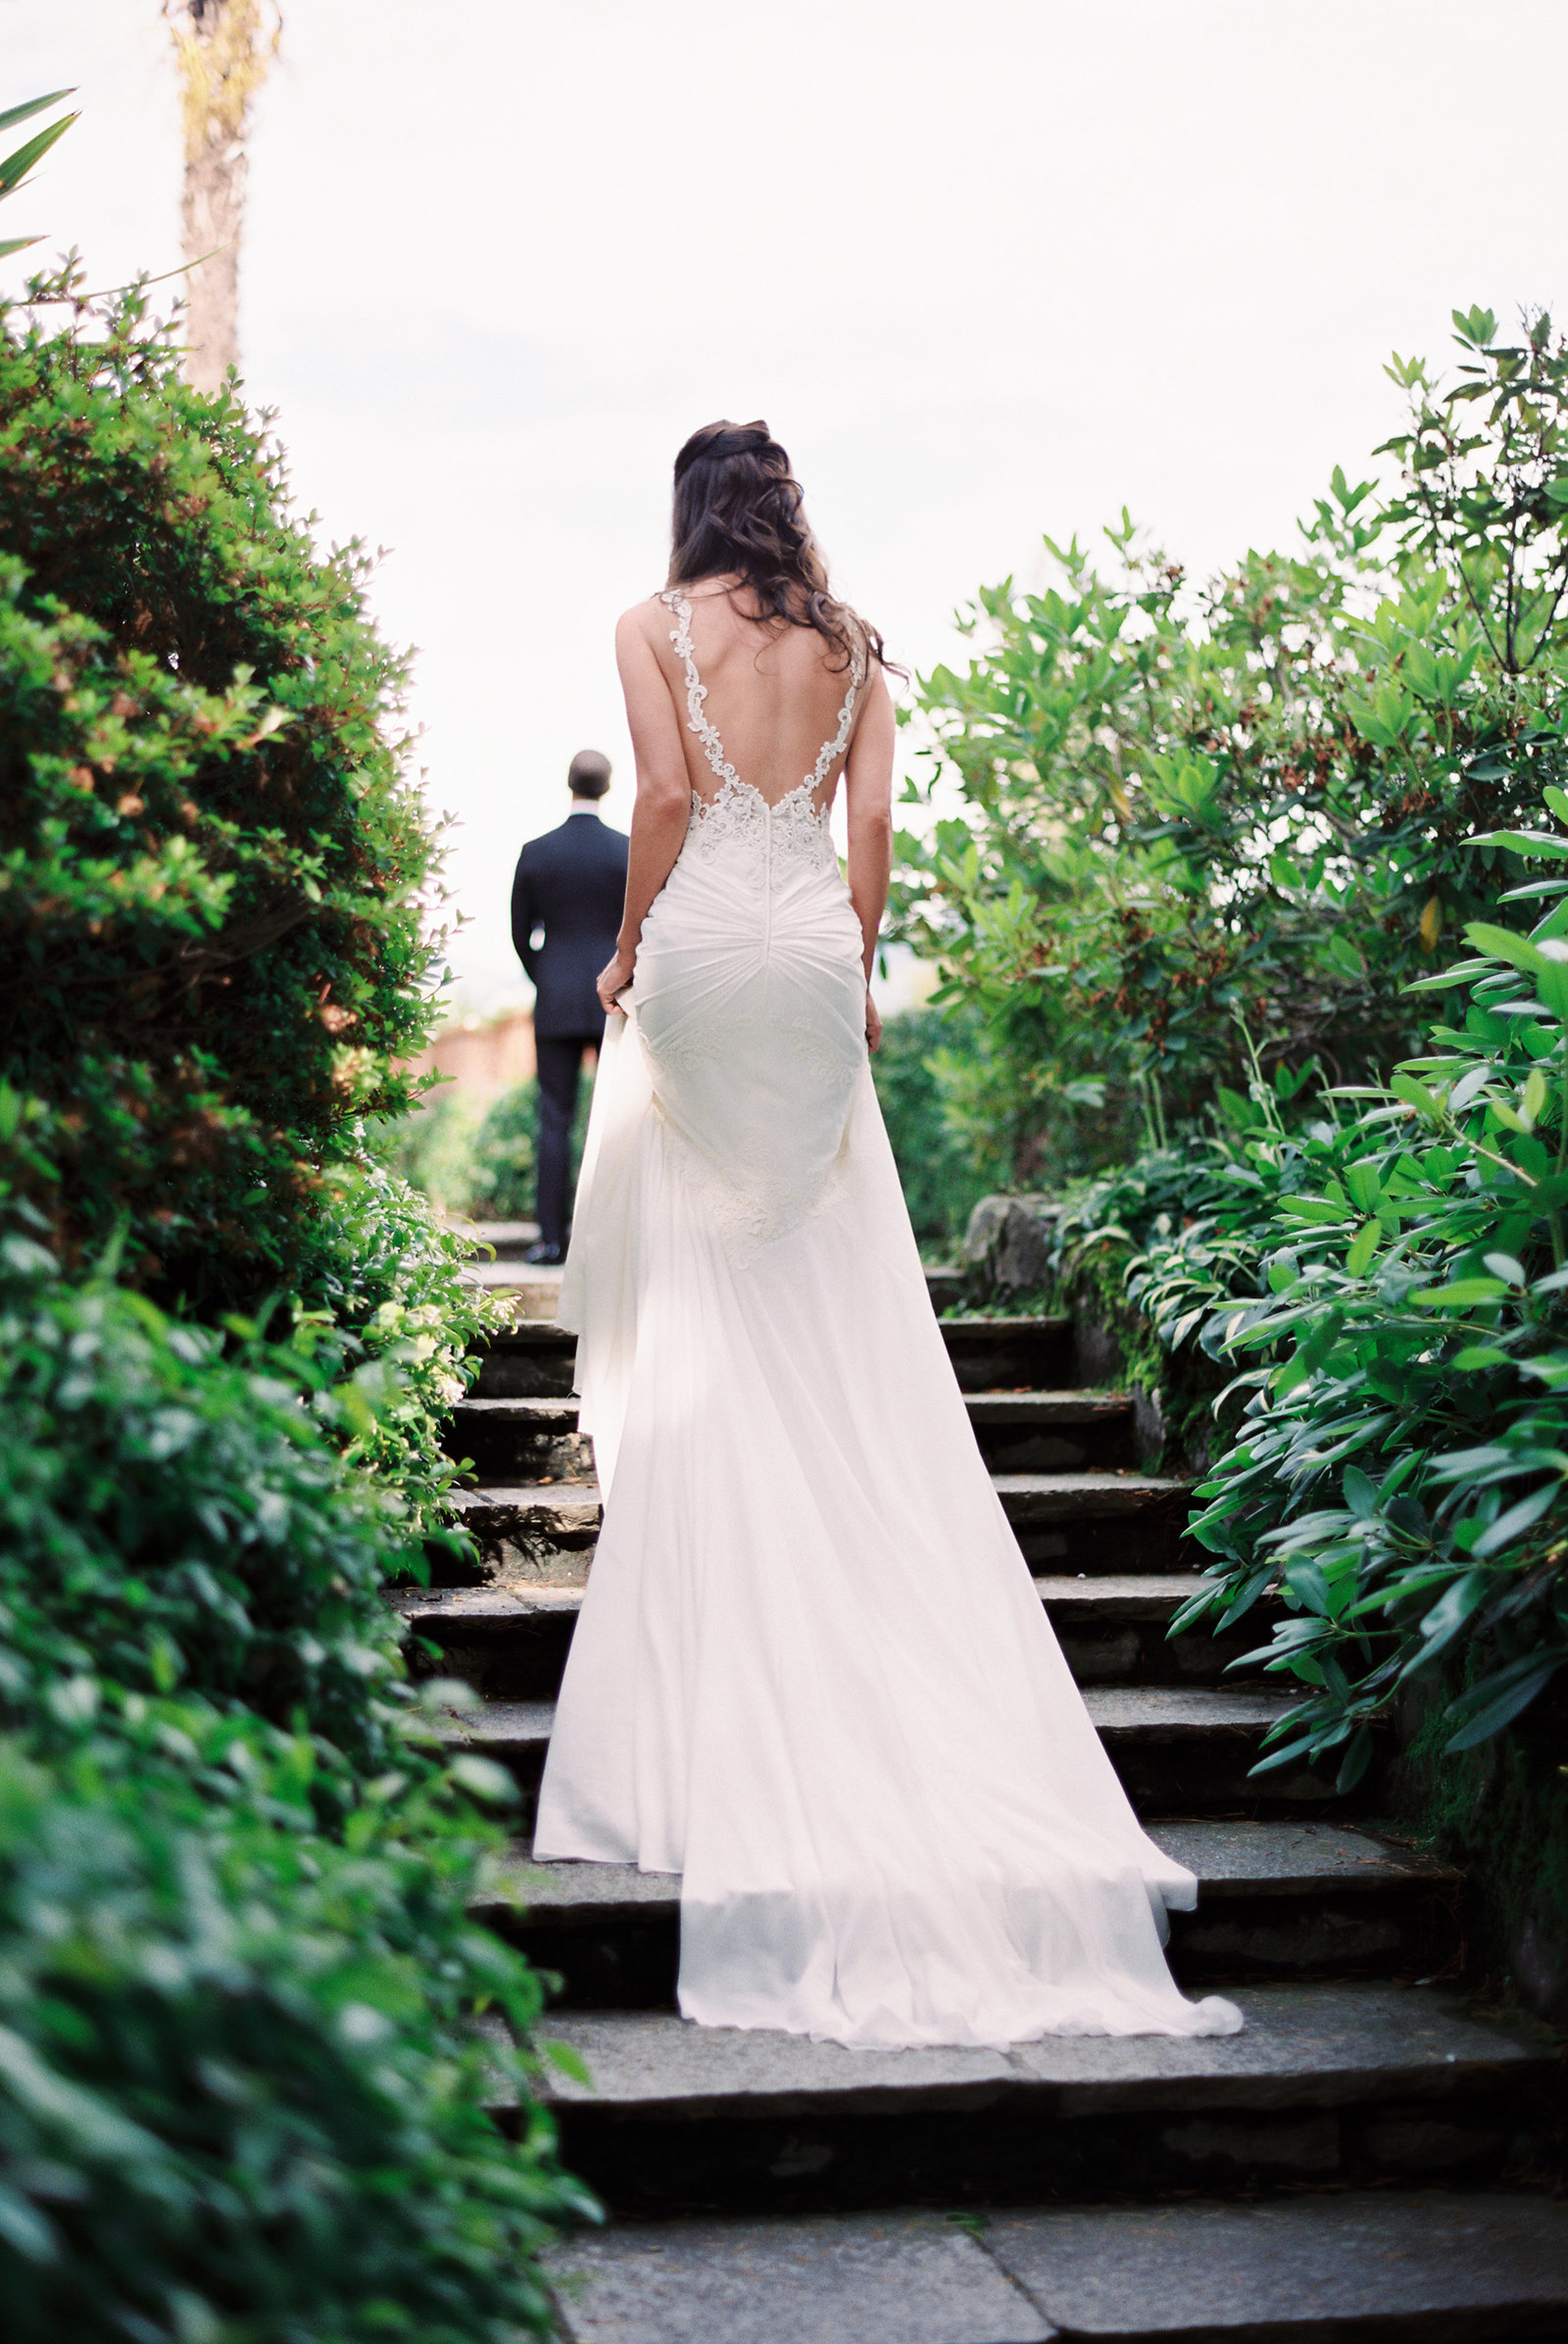 lake-como-italy-destination-wedding-melanie-gabrielle-photogrpahy-163